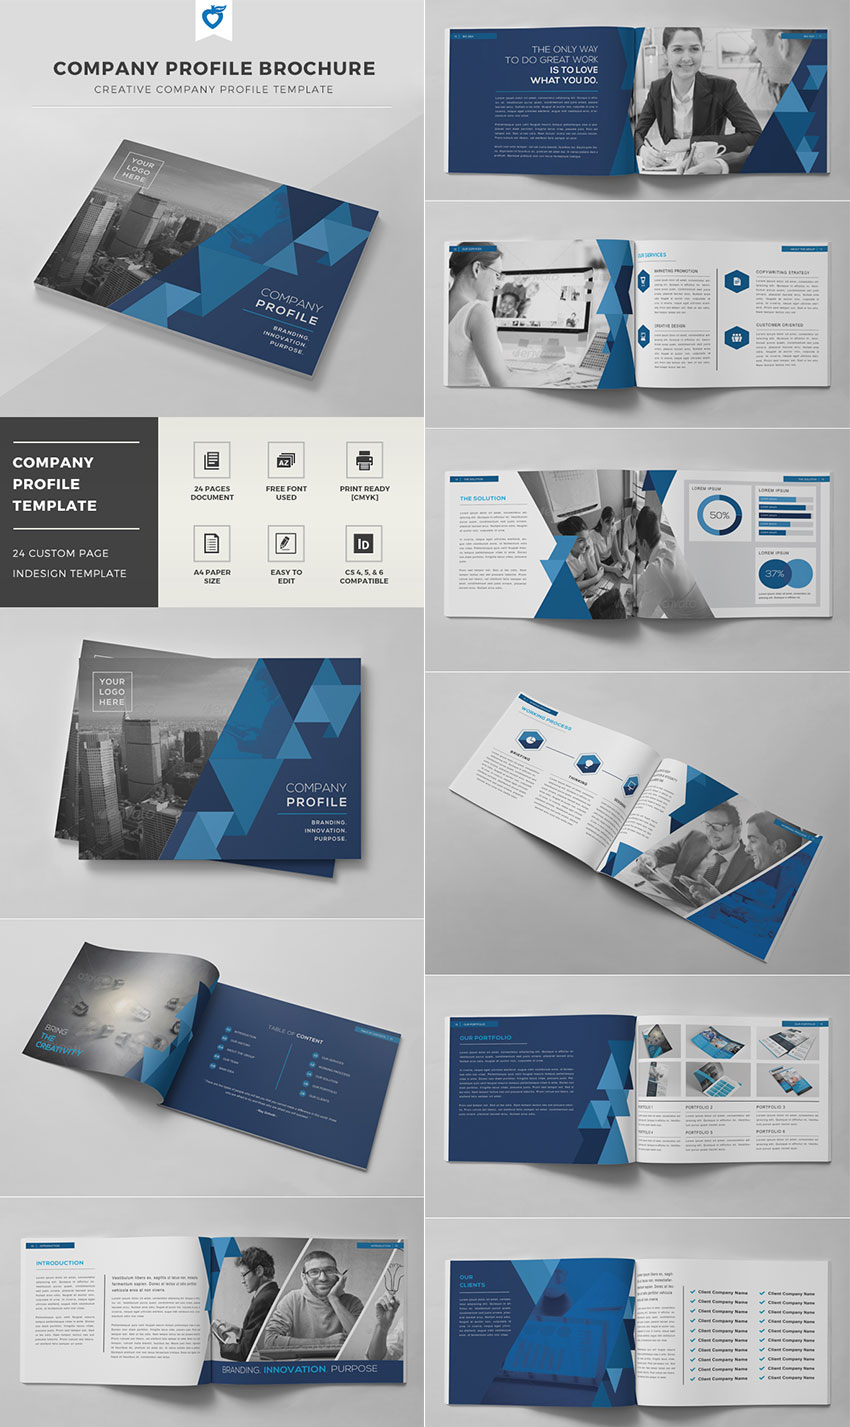 corporate brochure templates - 20 best indesign brochure templates for creative